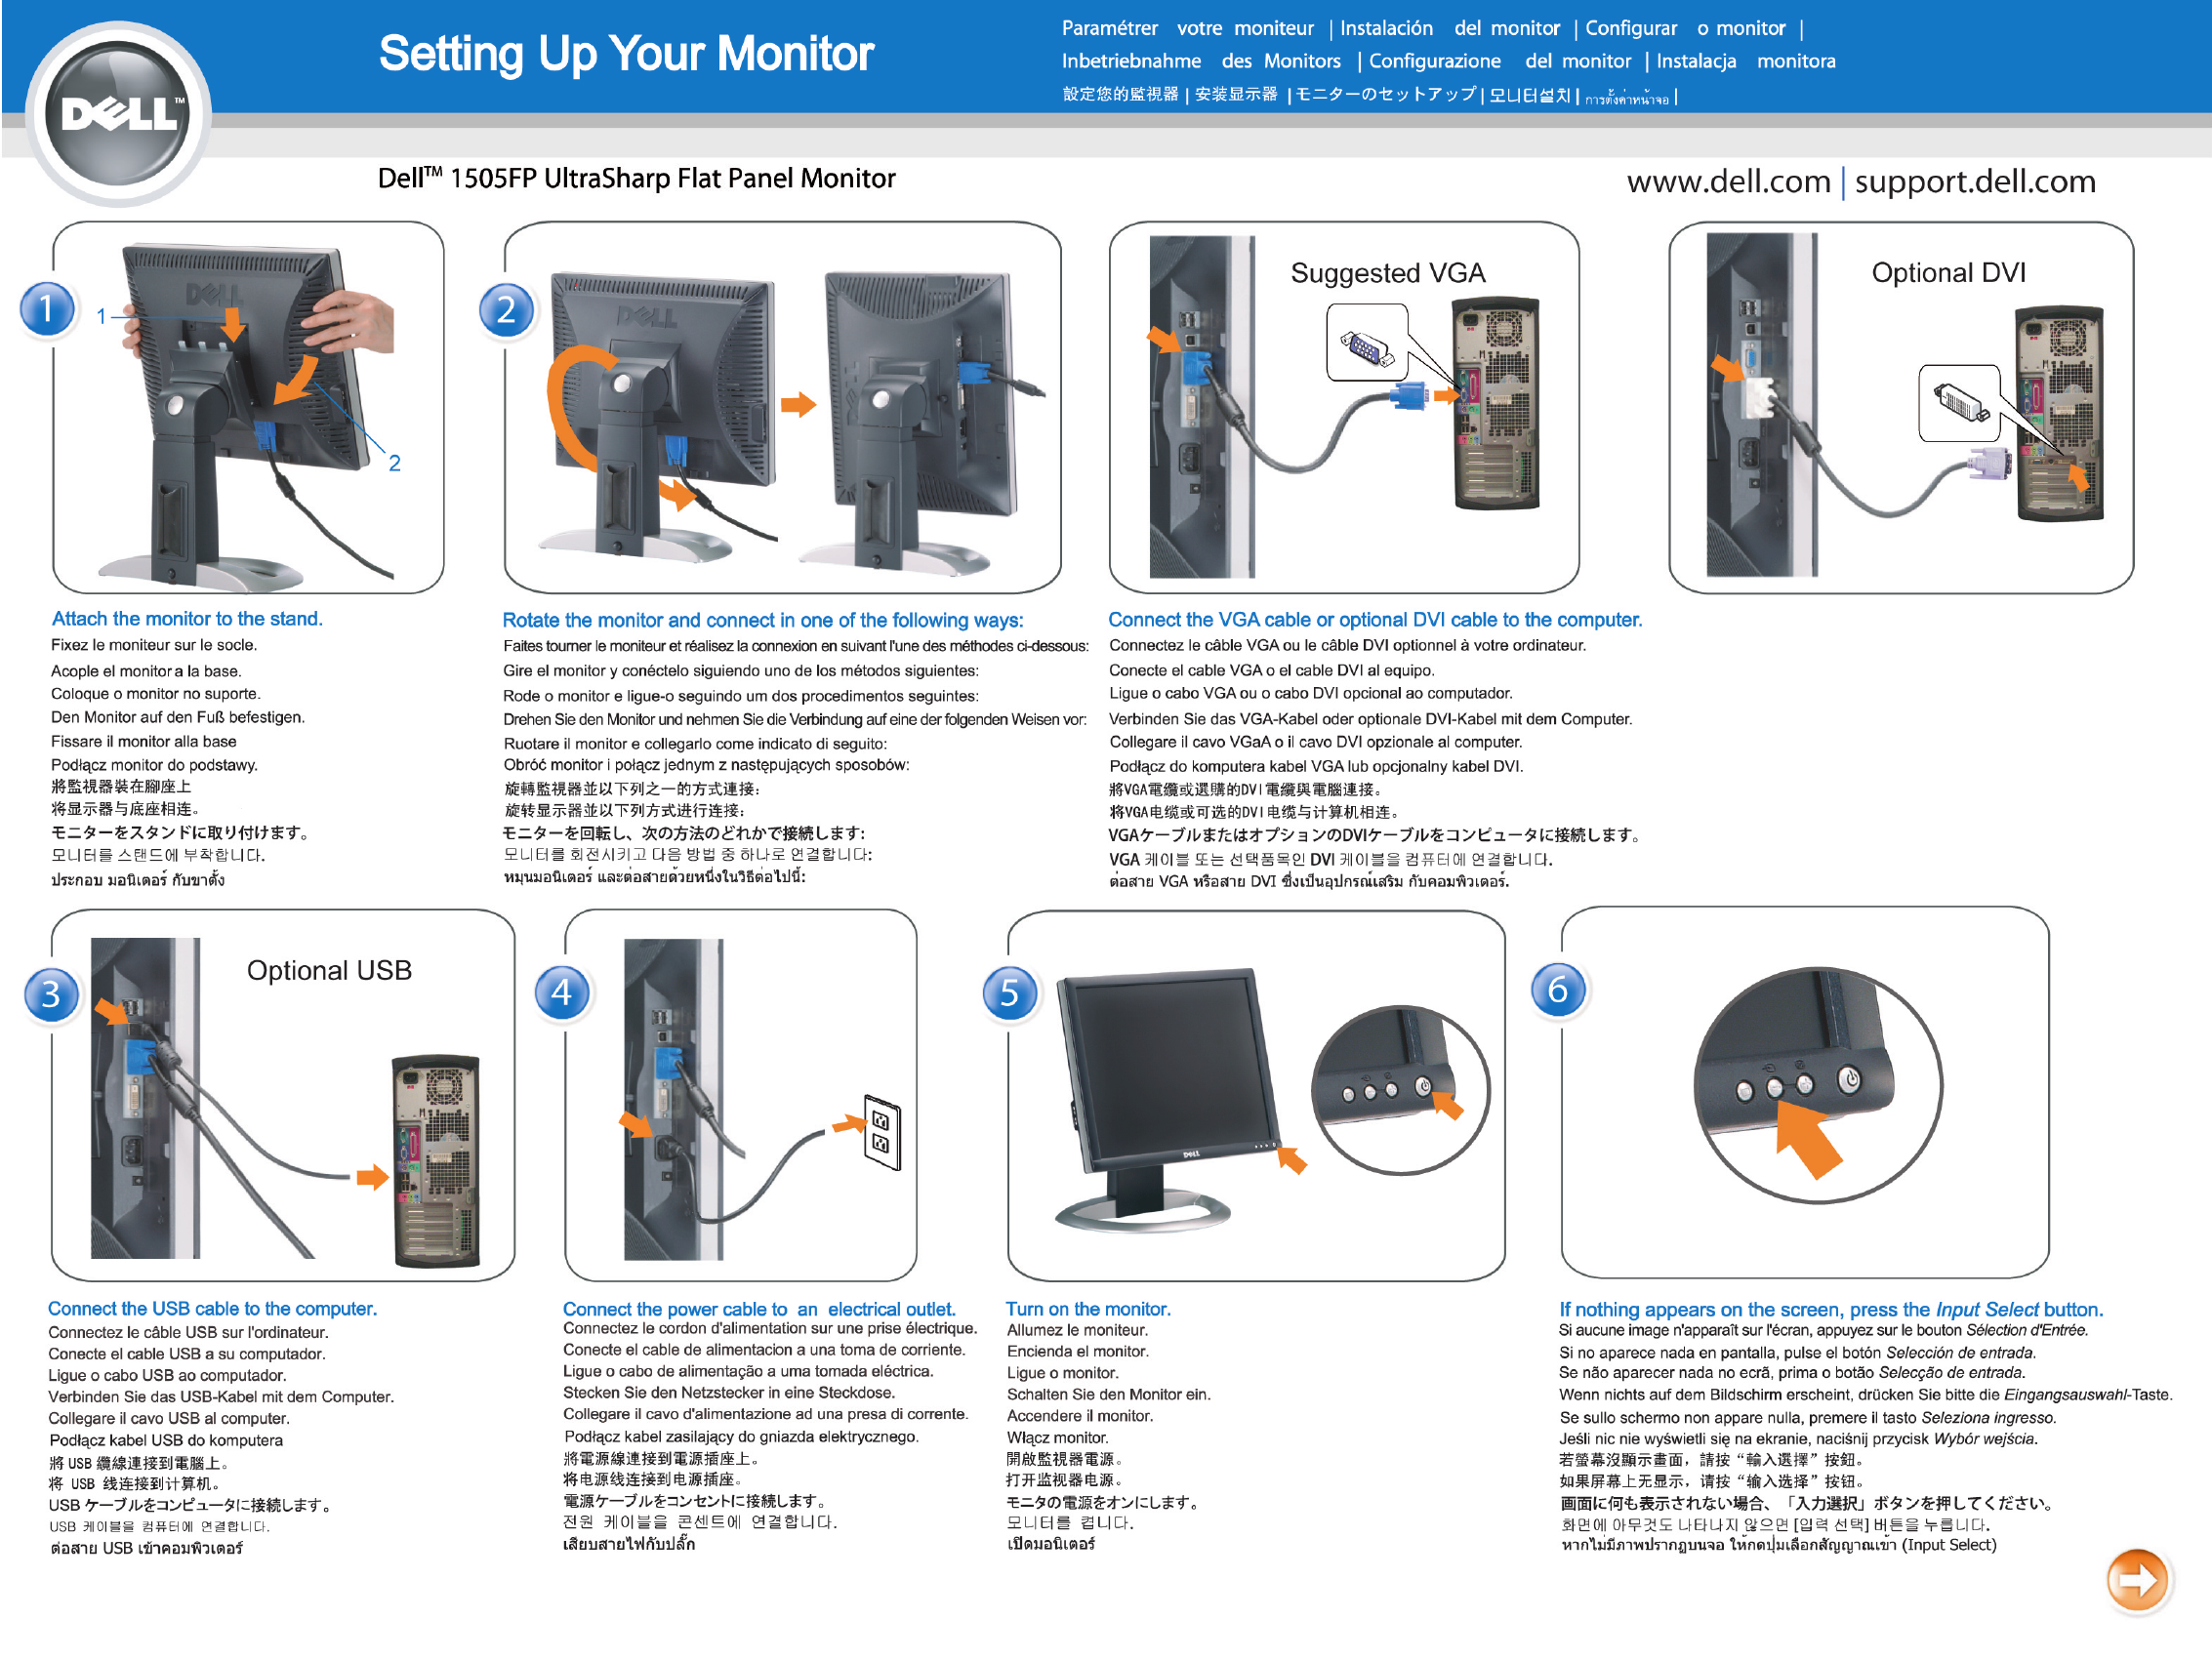 dell monitor user manual user guide manual that easy to read u2022 rh gatewaypartners co dell inspiron desktop manual dell desktop manual